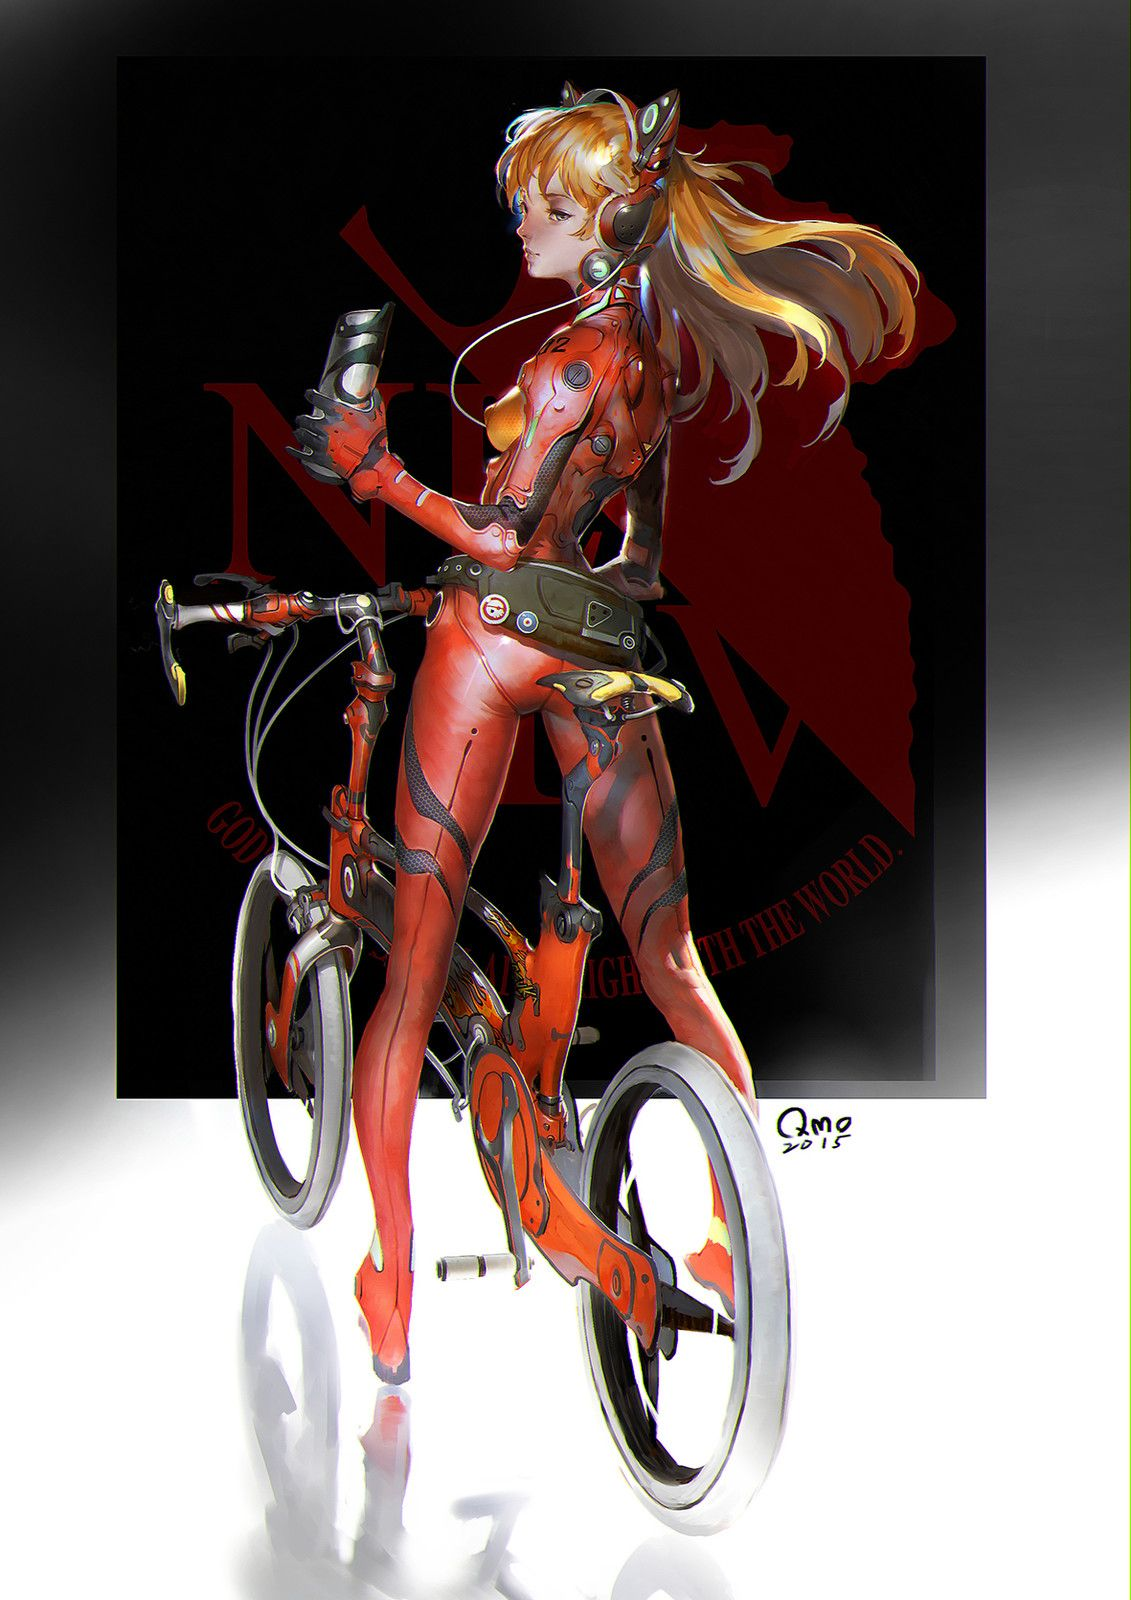 ASUKA, 羅 光佑 on ArtStation at https://www.artstation.com/artwork/rXy5J